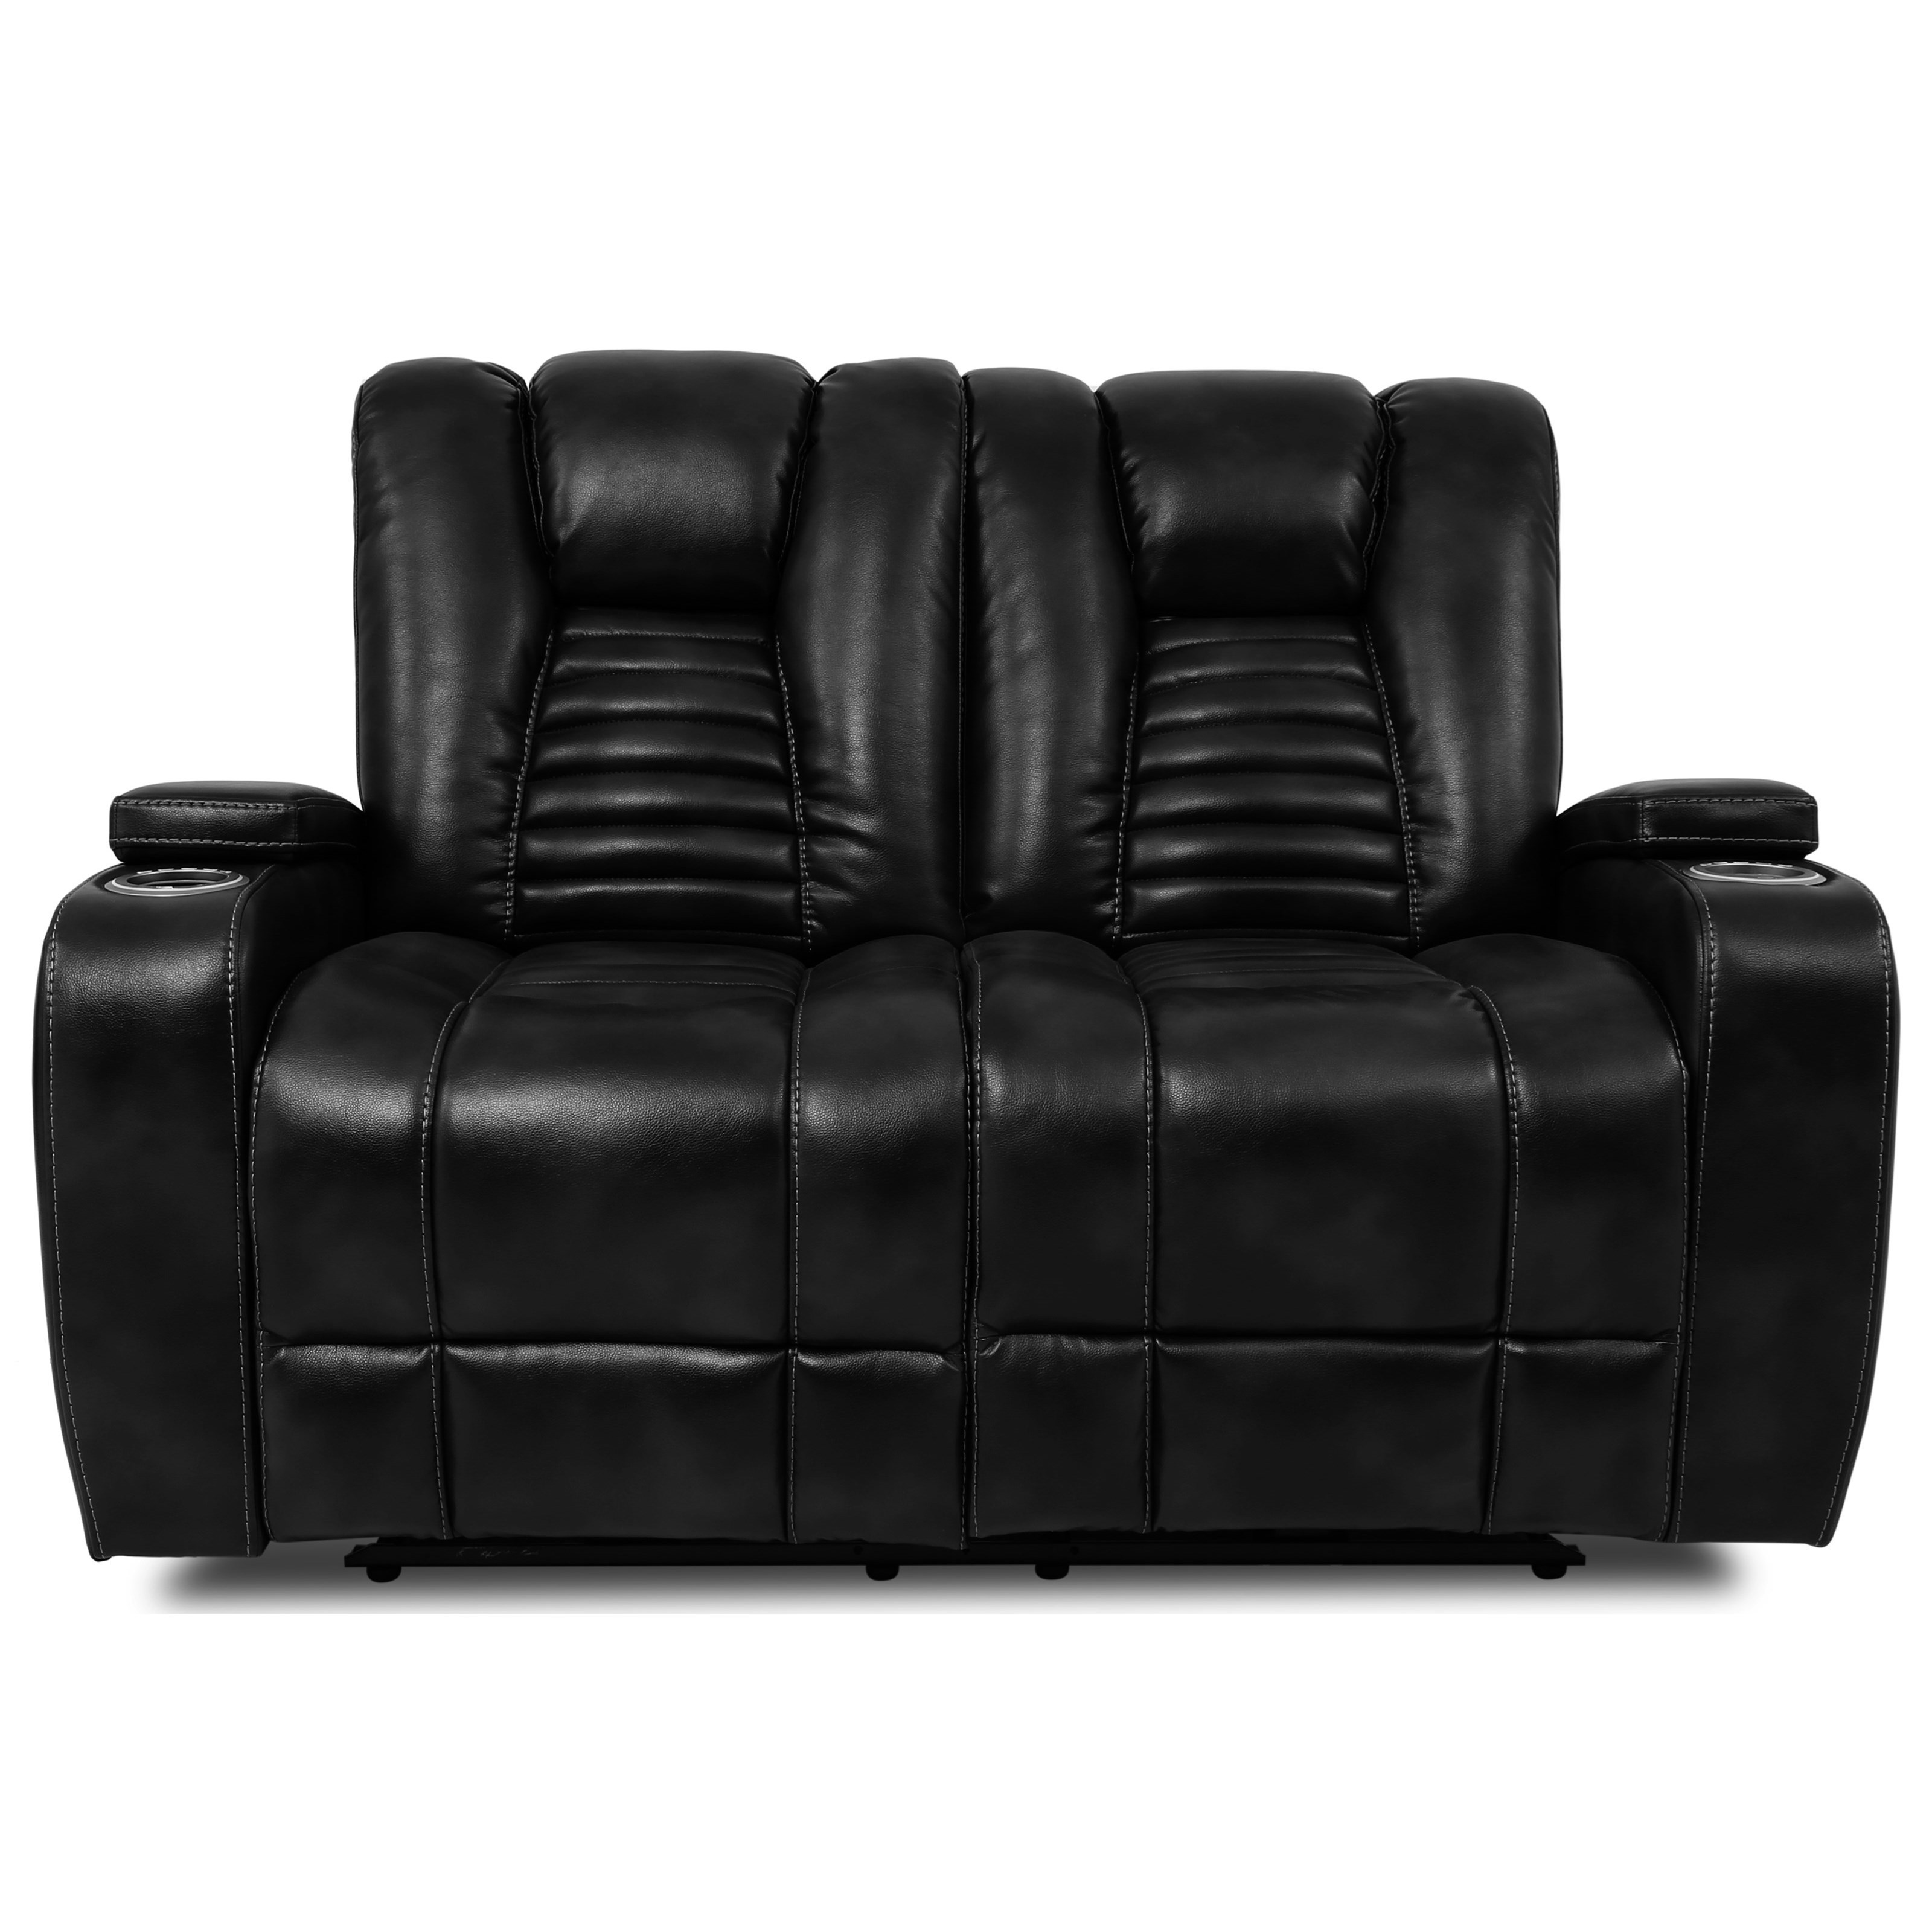 70051 Dual Power Reclining Loveseat by Cheers at Lagniappe Home Store